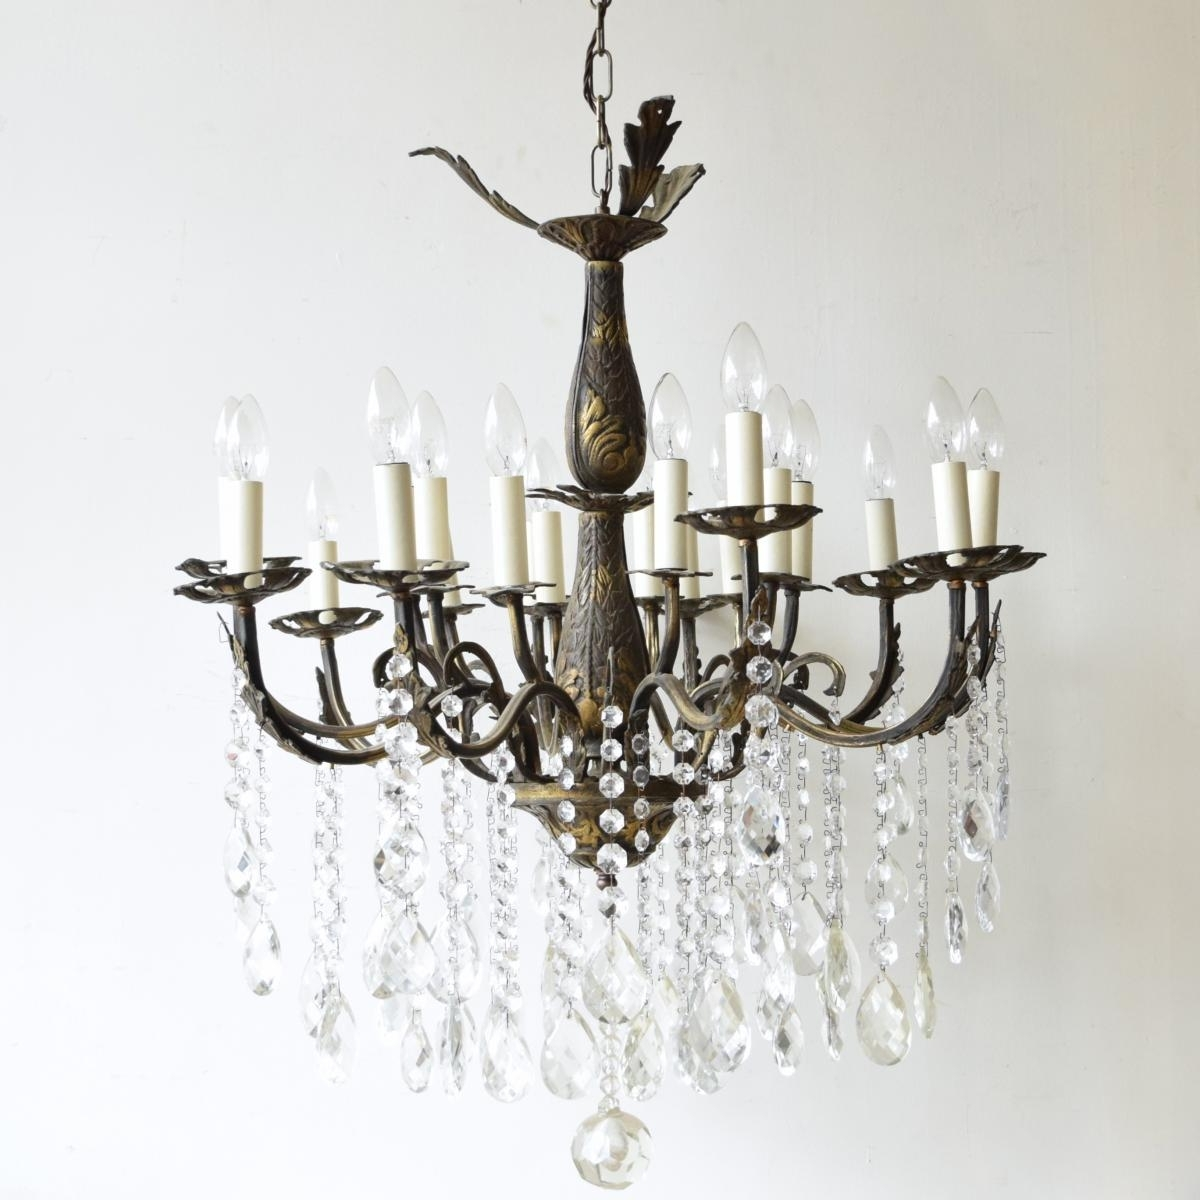 Recent Large Vintage French 16 Light Brass Chandelier For Sale At Pamono In Chandeliers Vintage (View 17 of 20)